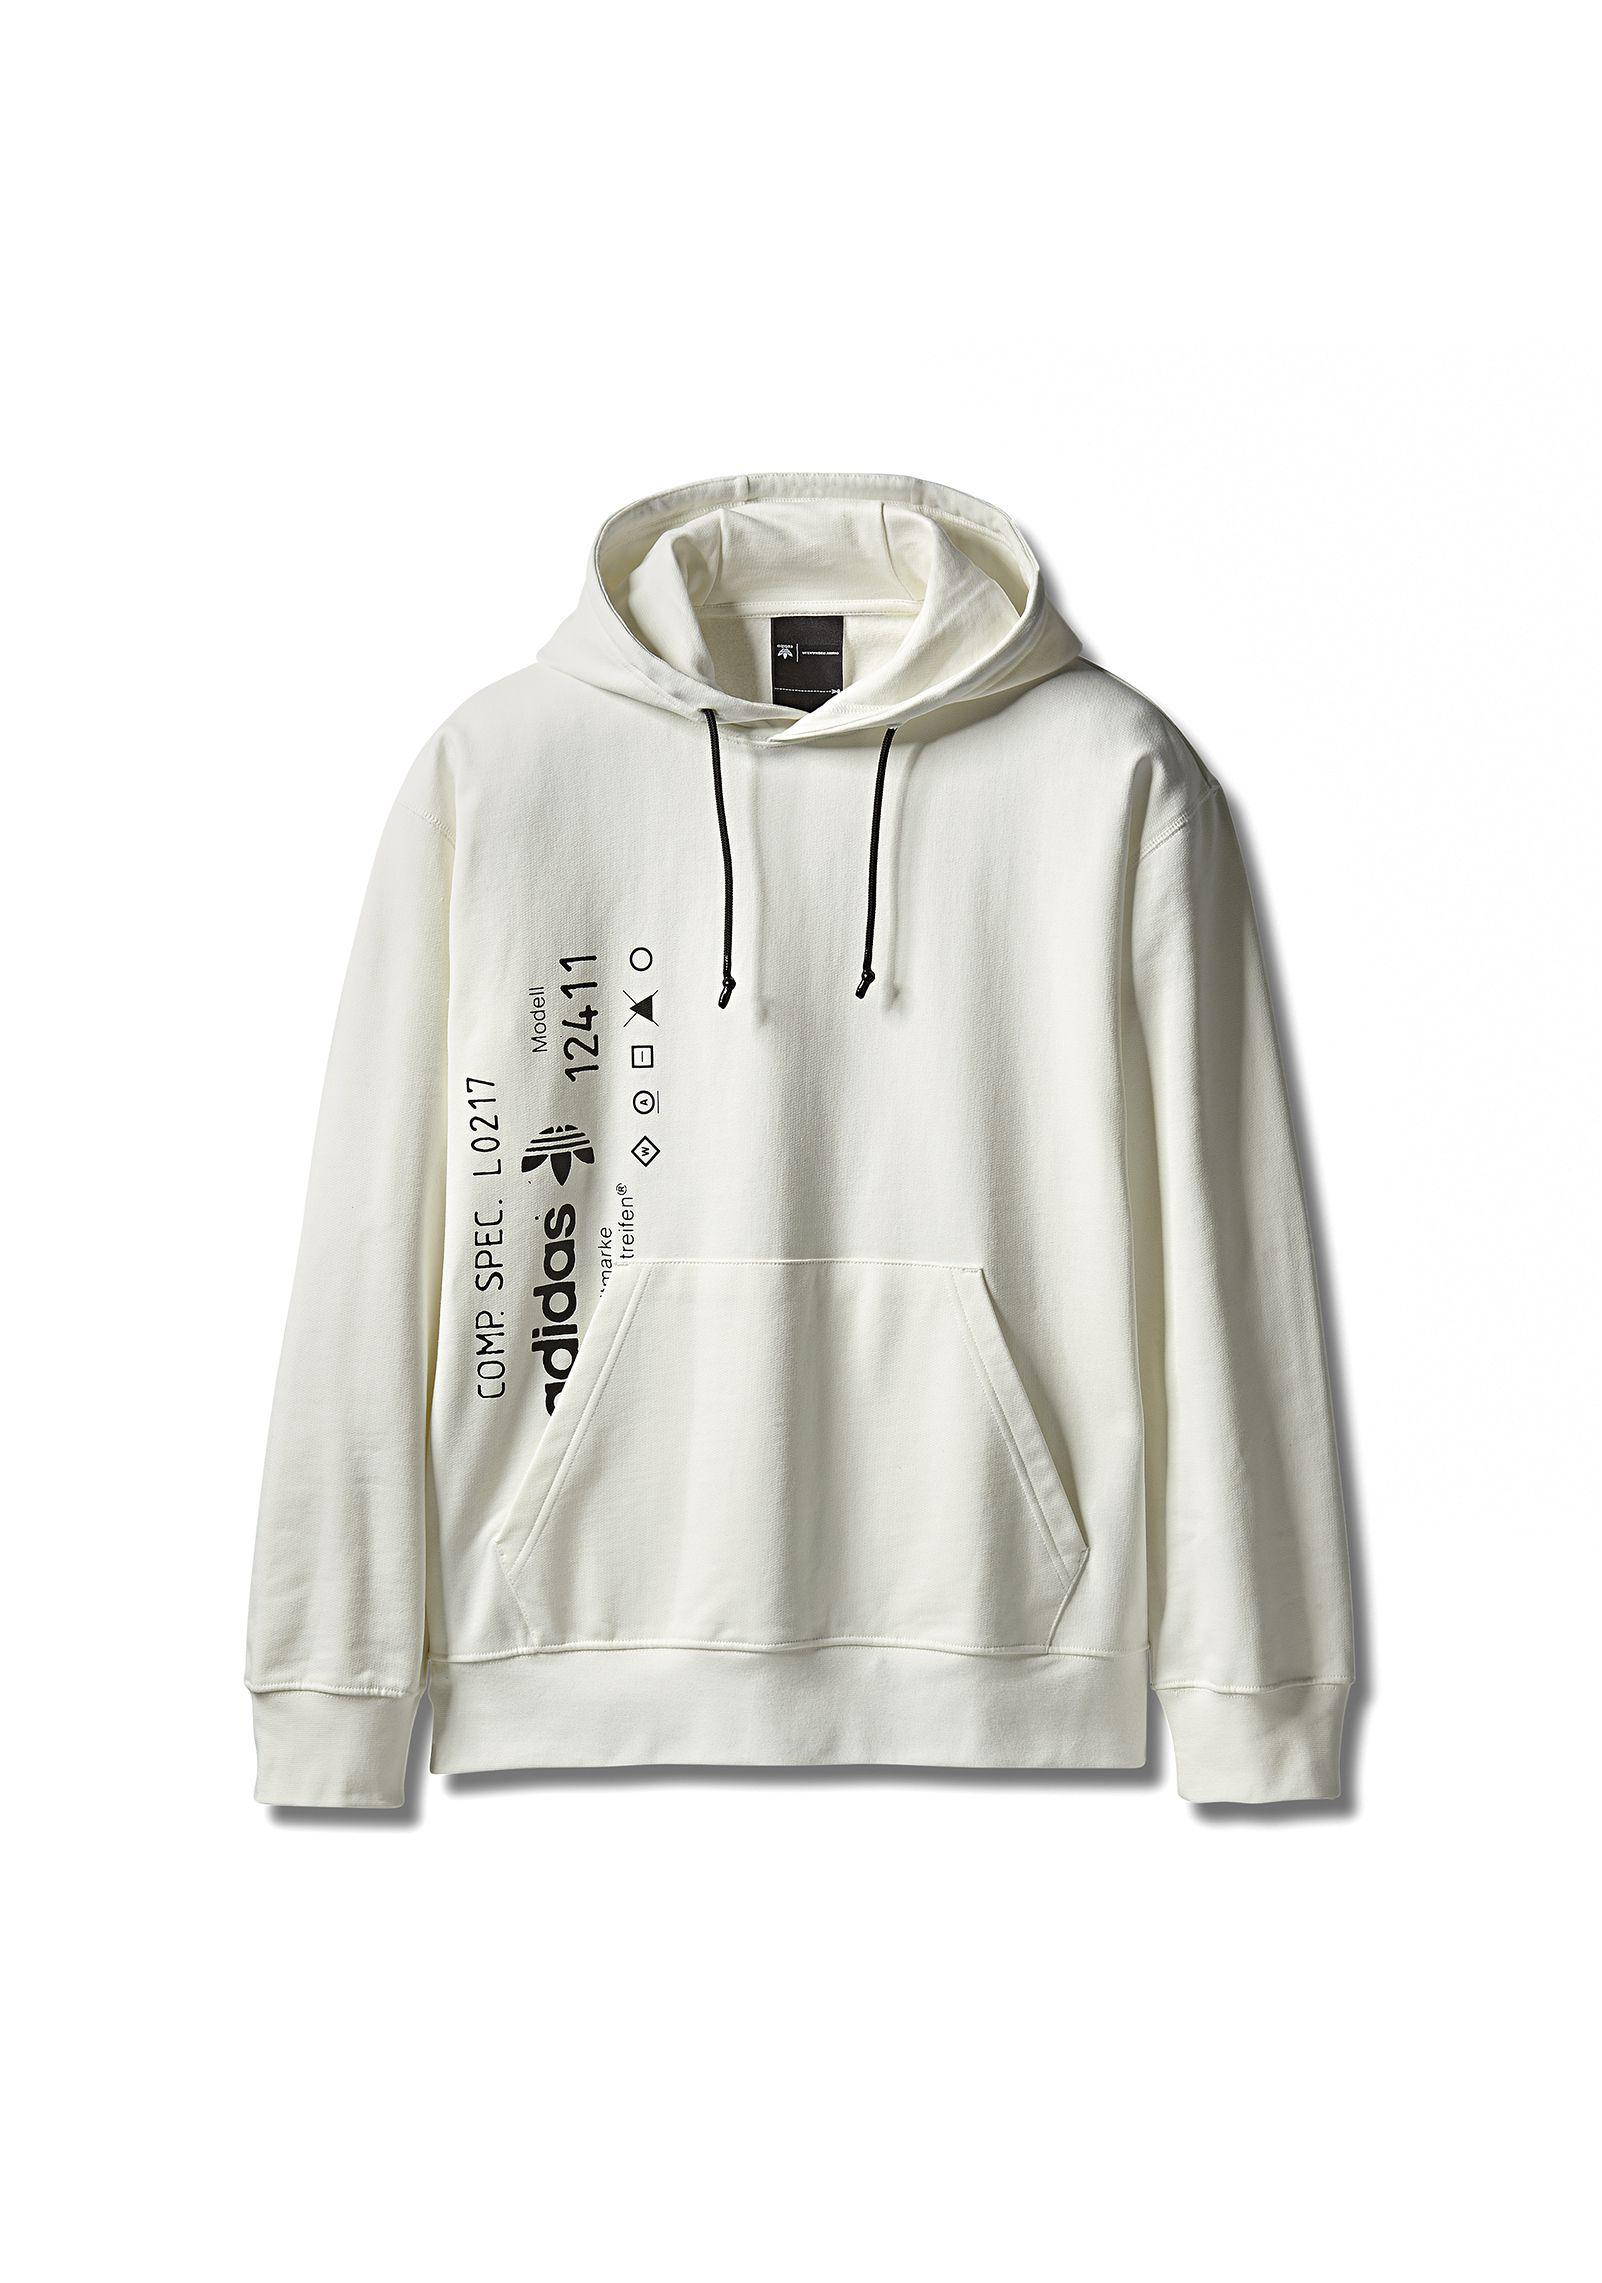 Lyst - Alexander Wang Adidas Originals By Aw Graphic Hoodie in White ... 33872599f5b4e